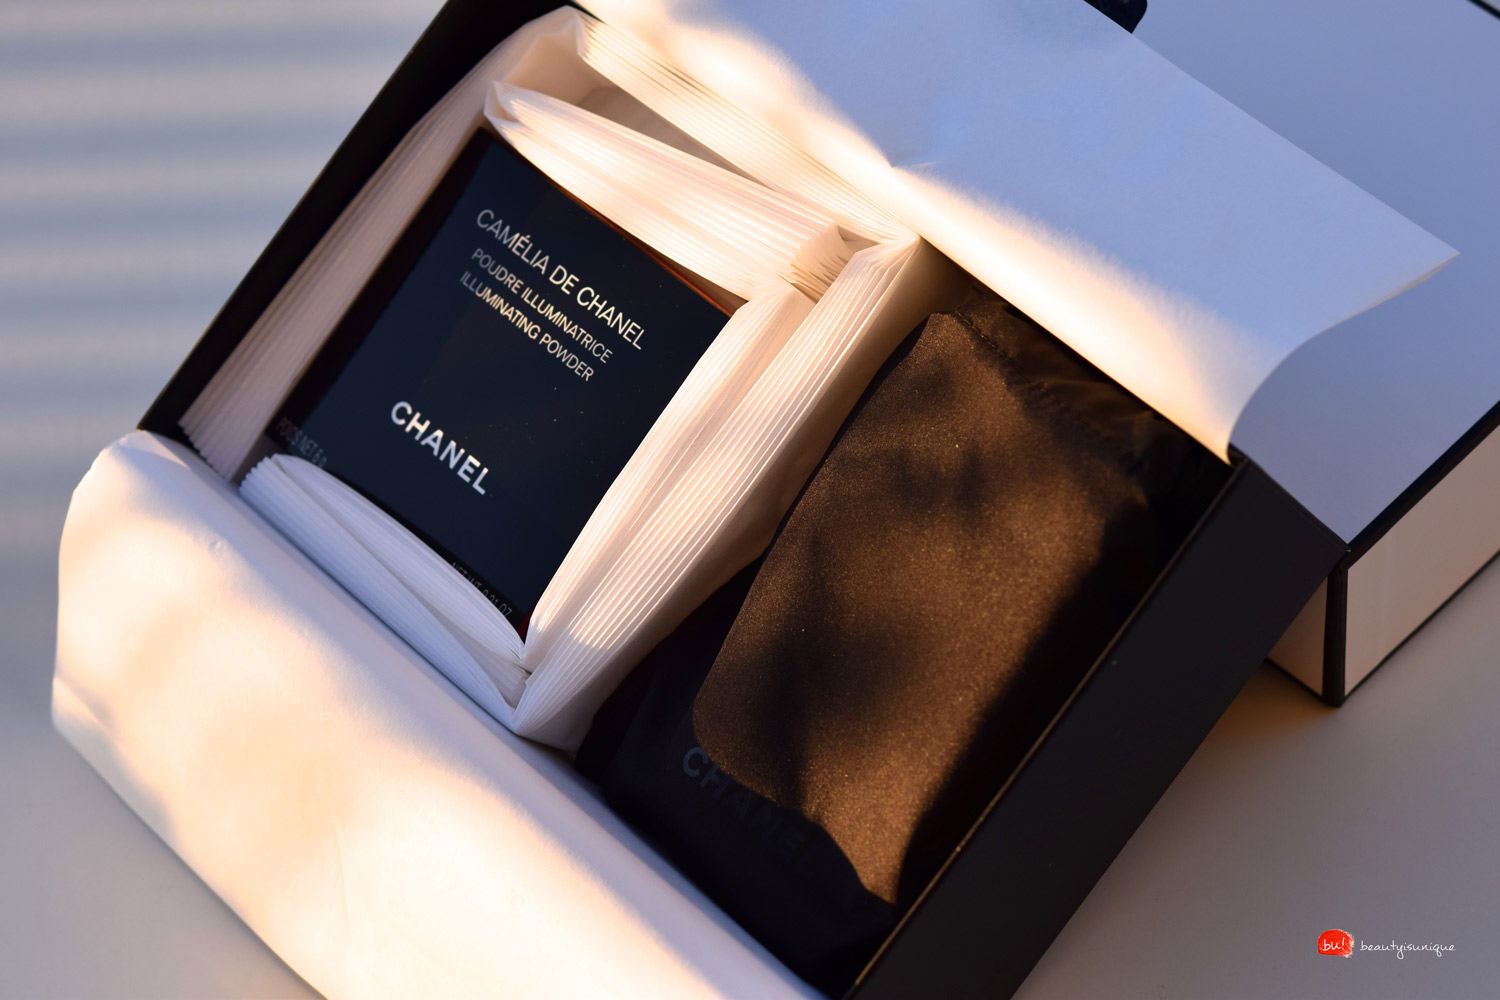 Chanel-unboxing